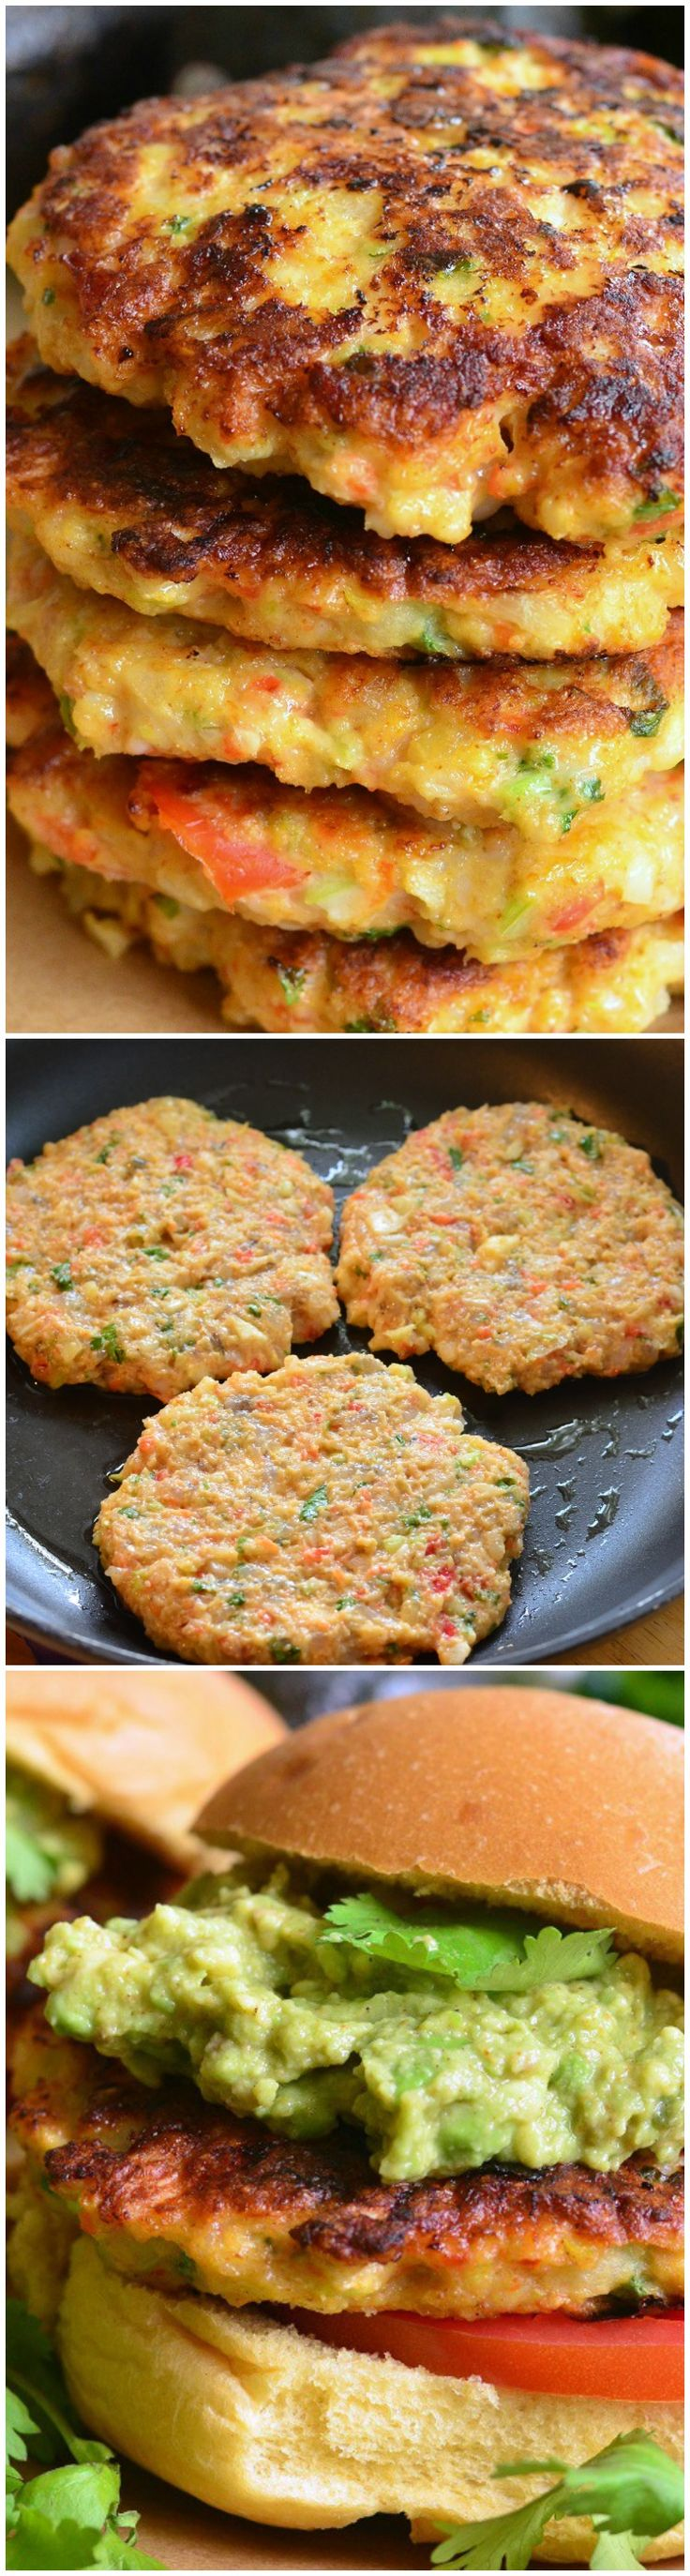 Avocado Shrimp Burgers - Will Cook For Smiles